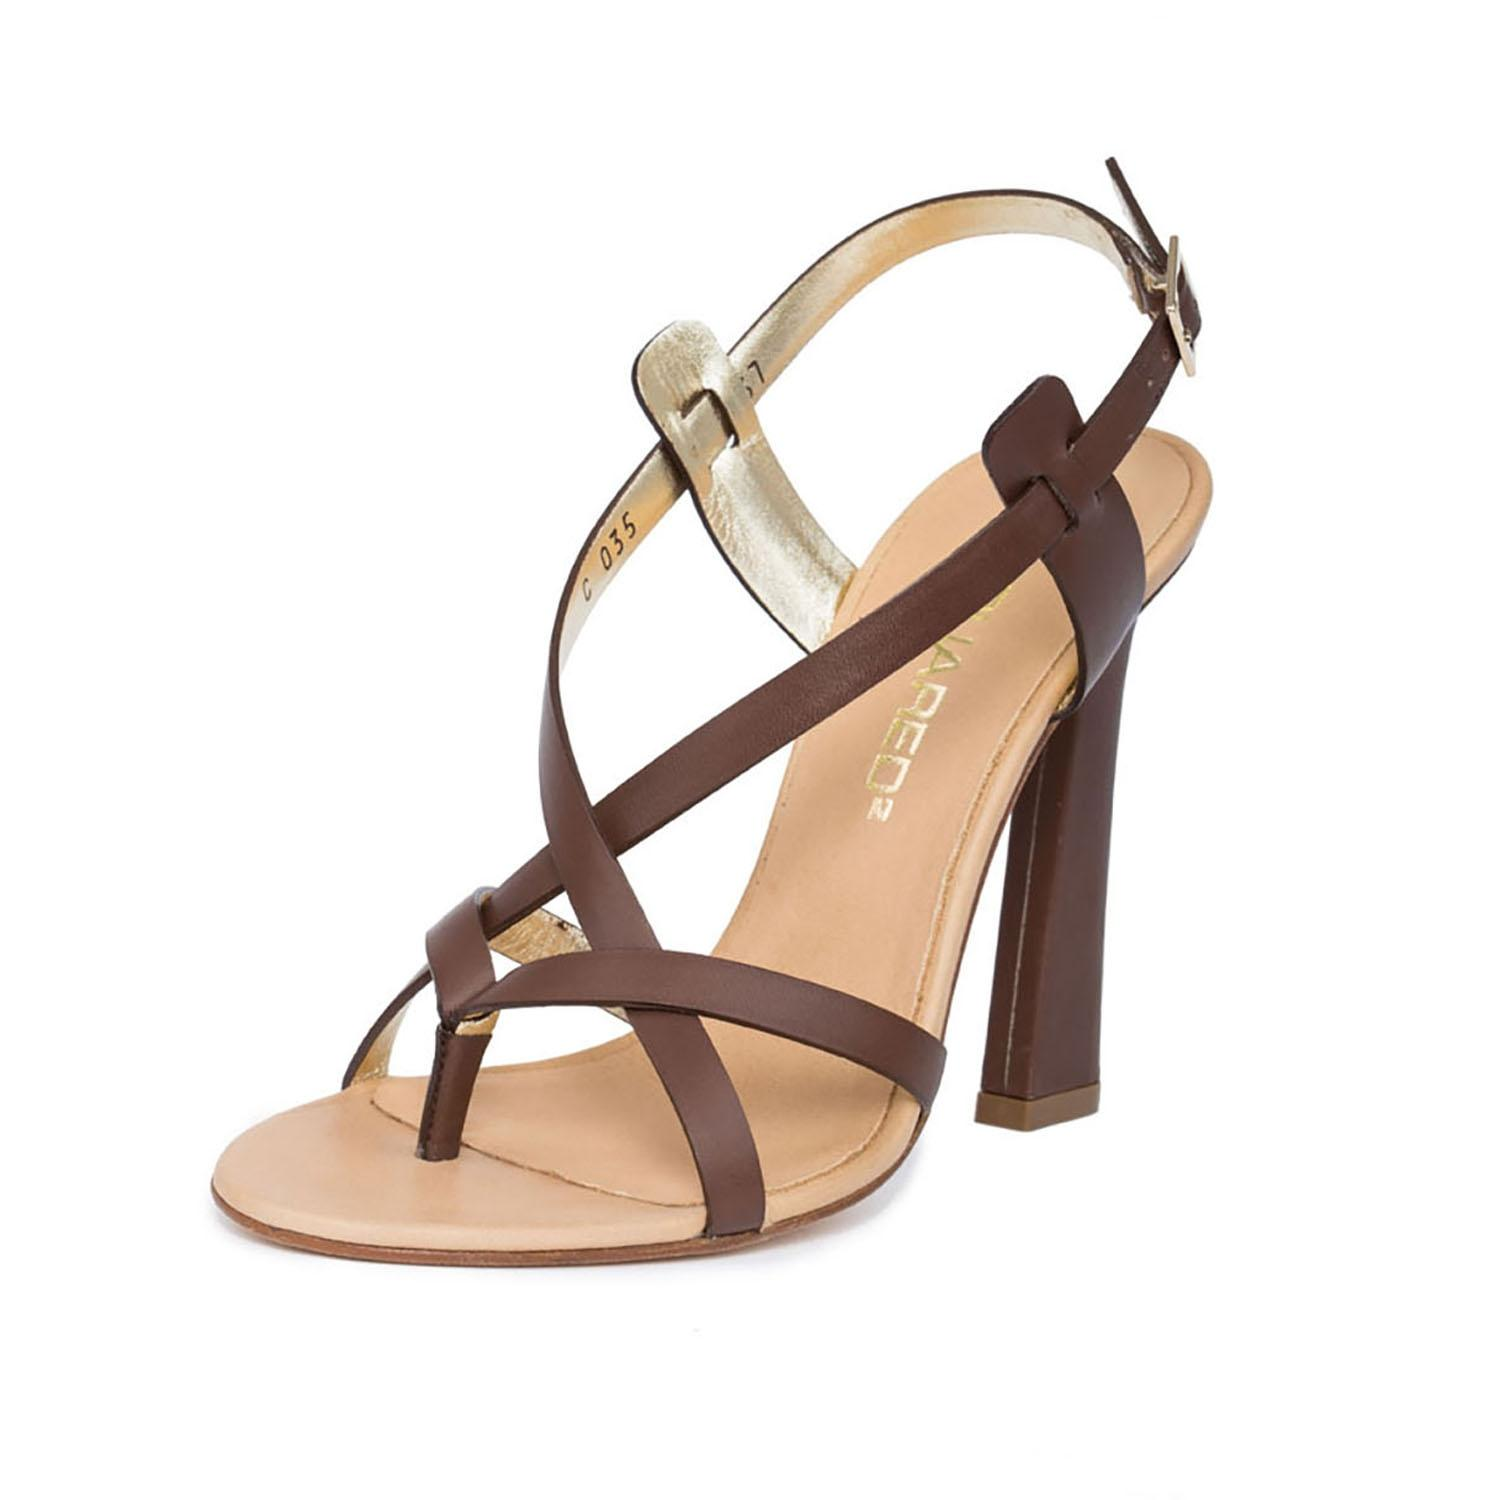 Sandals for Women On Sale, Leather Brown, Leather, 2017, 3.5 4.5 5.5 7.5 Dsquared2